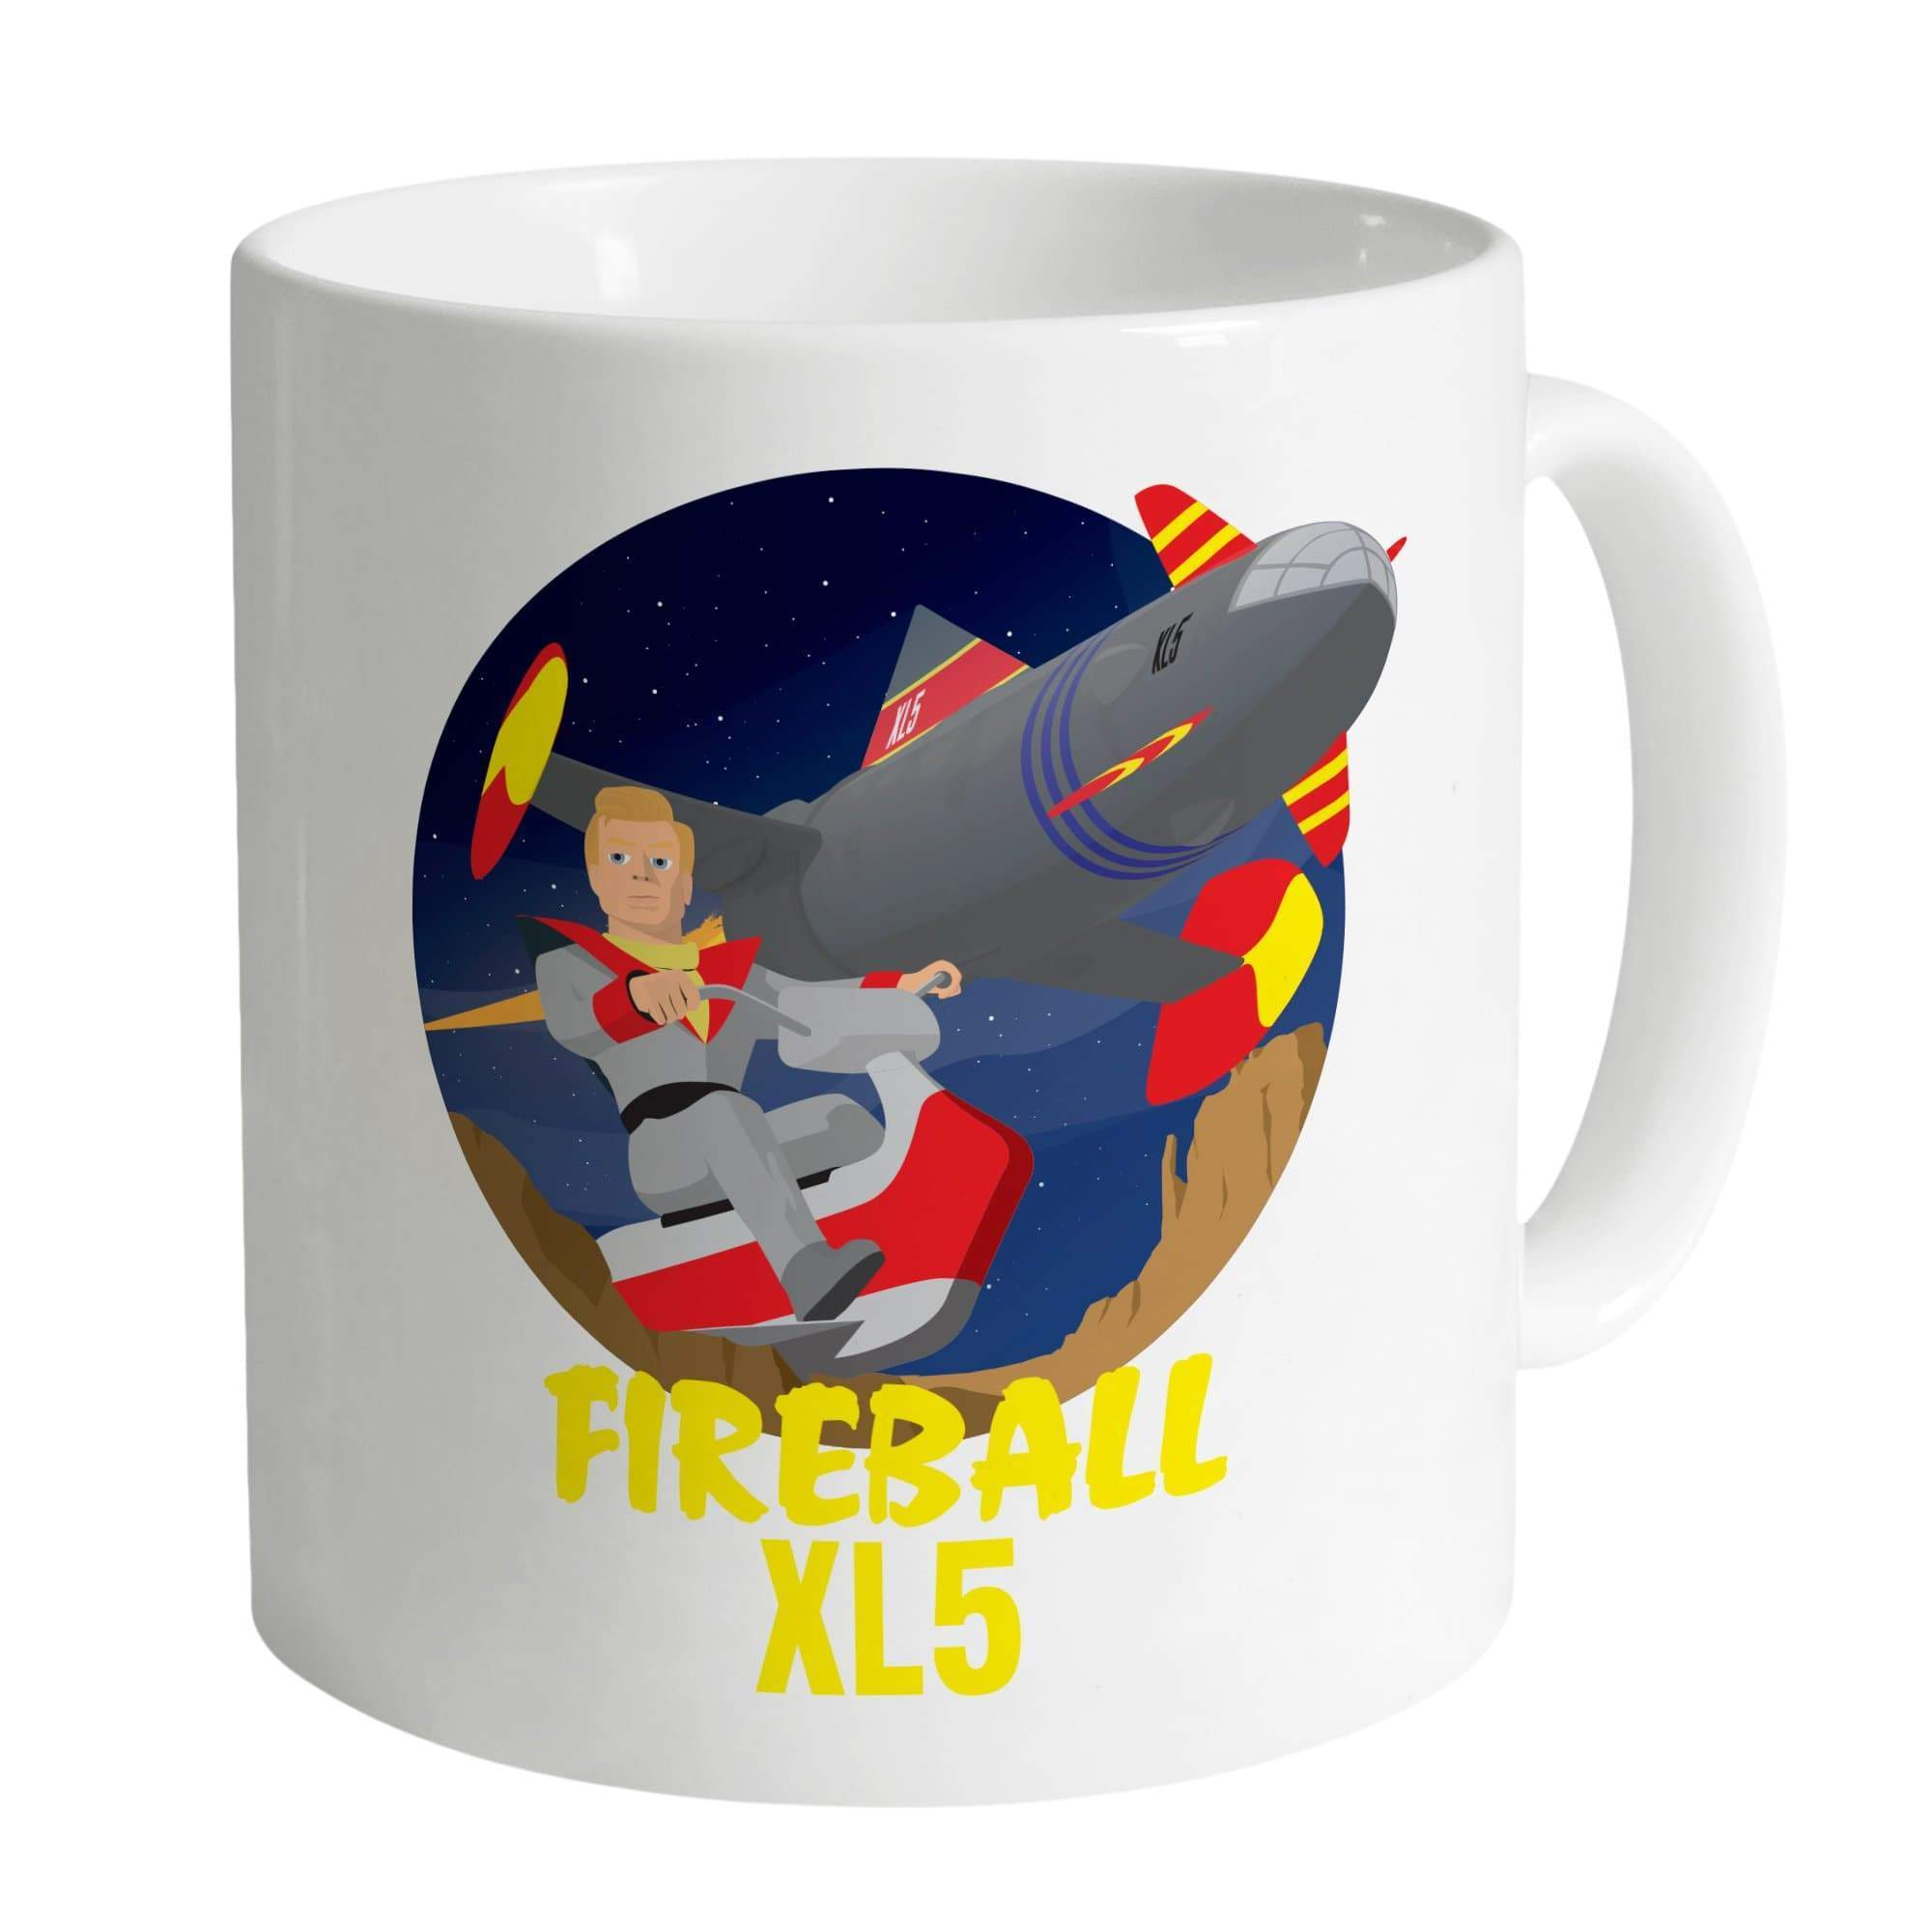 Fireball XL5 White Mug [Official & Exclusive] - The Gerry Anderson Store